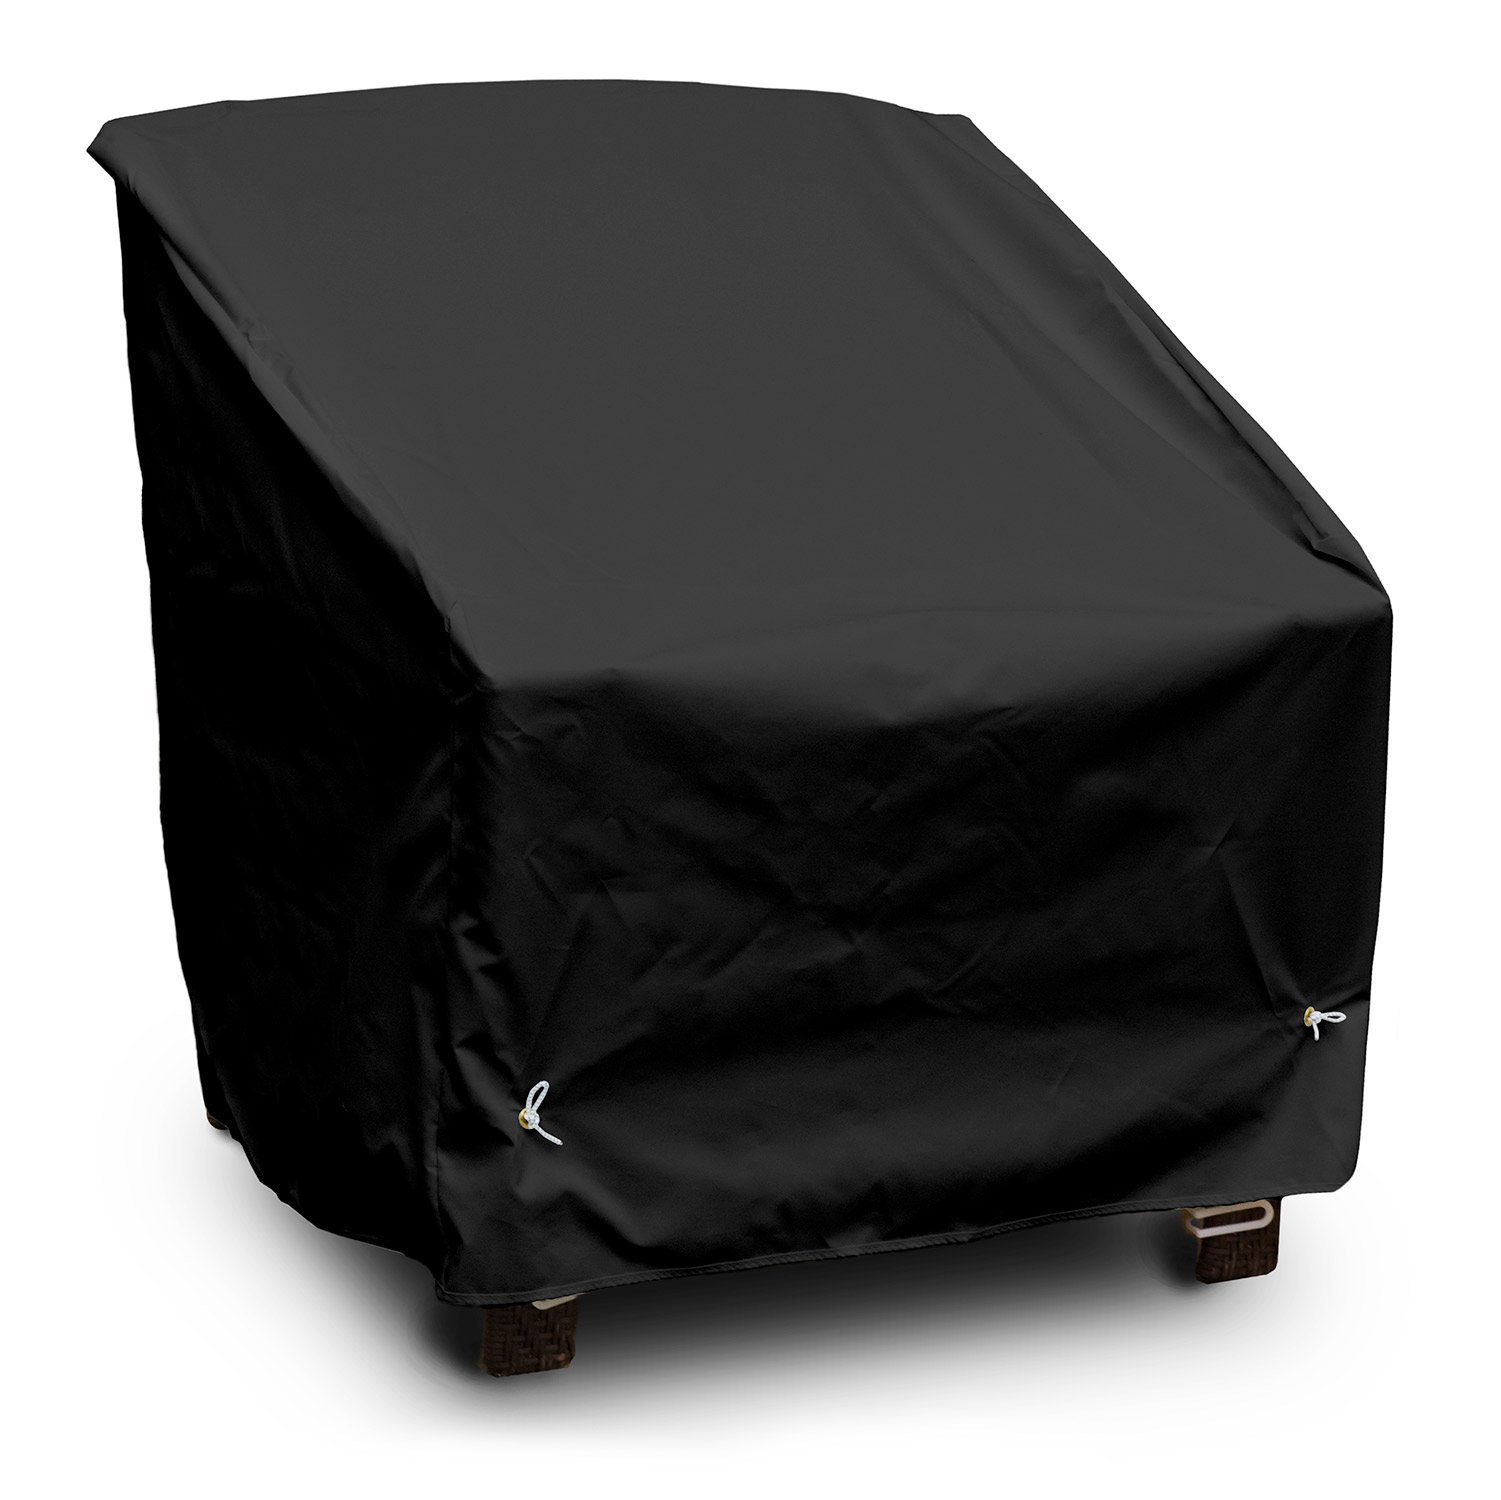 KoverRoos Weathermax 76250 Deep Seating High Back Chair Cover, 34-Inch Width by 35-Inch Diameter by 37-Inch Height, Black